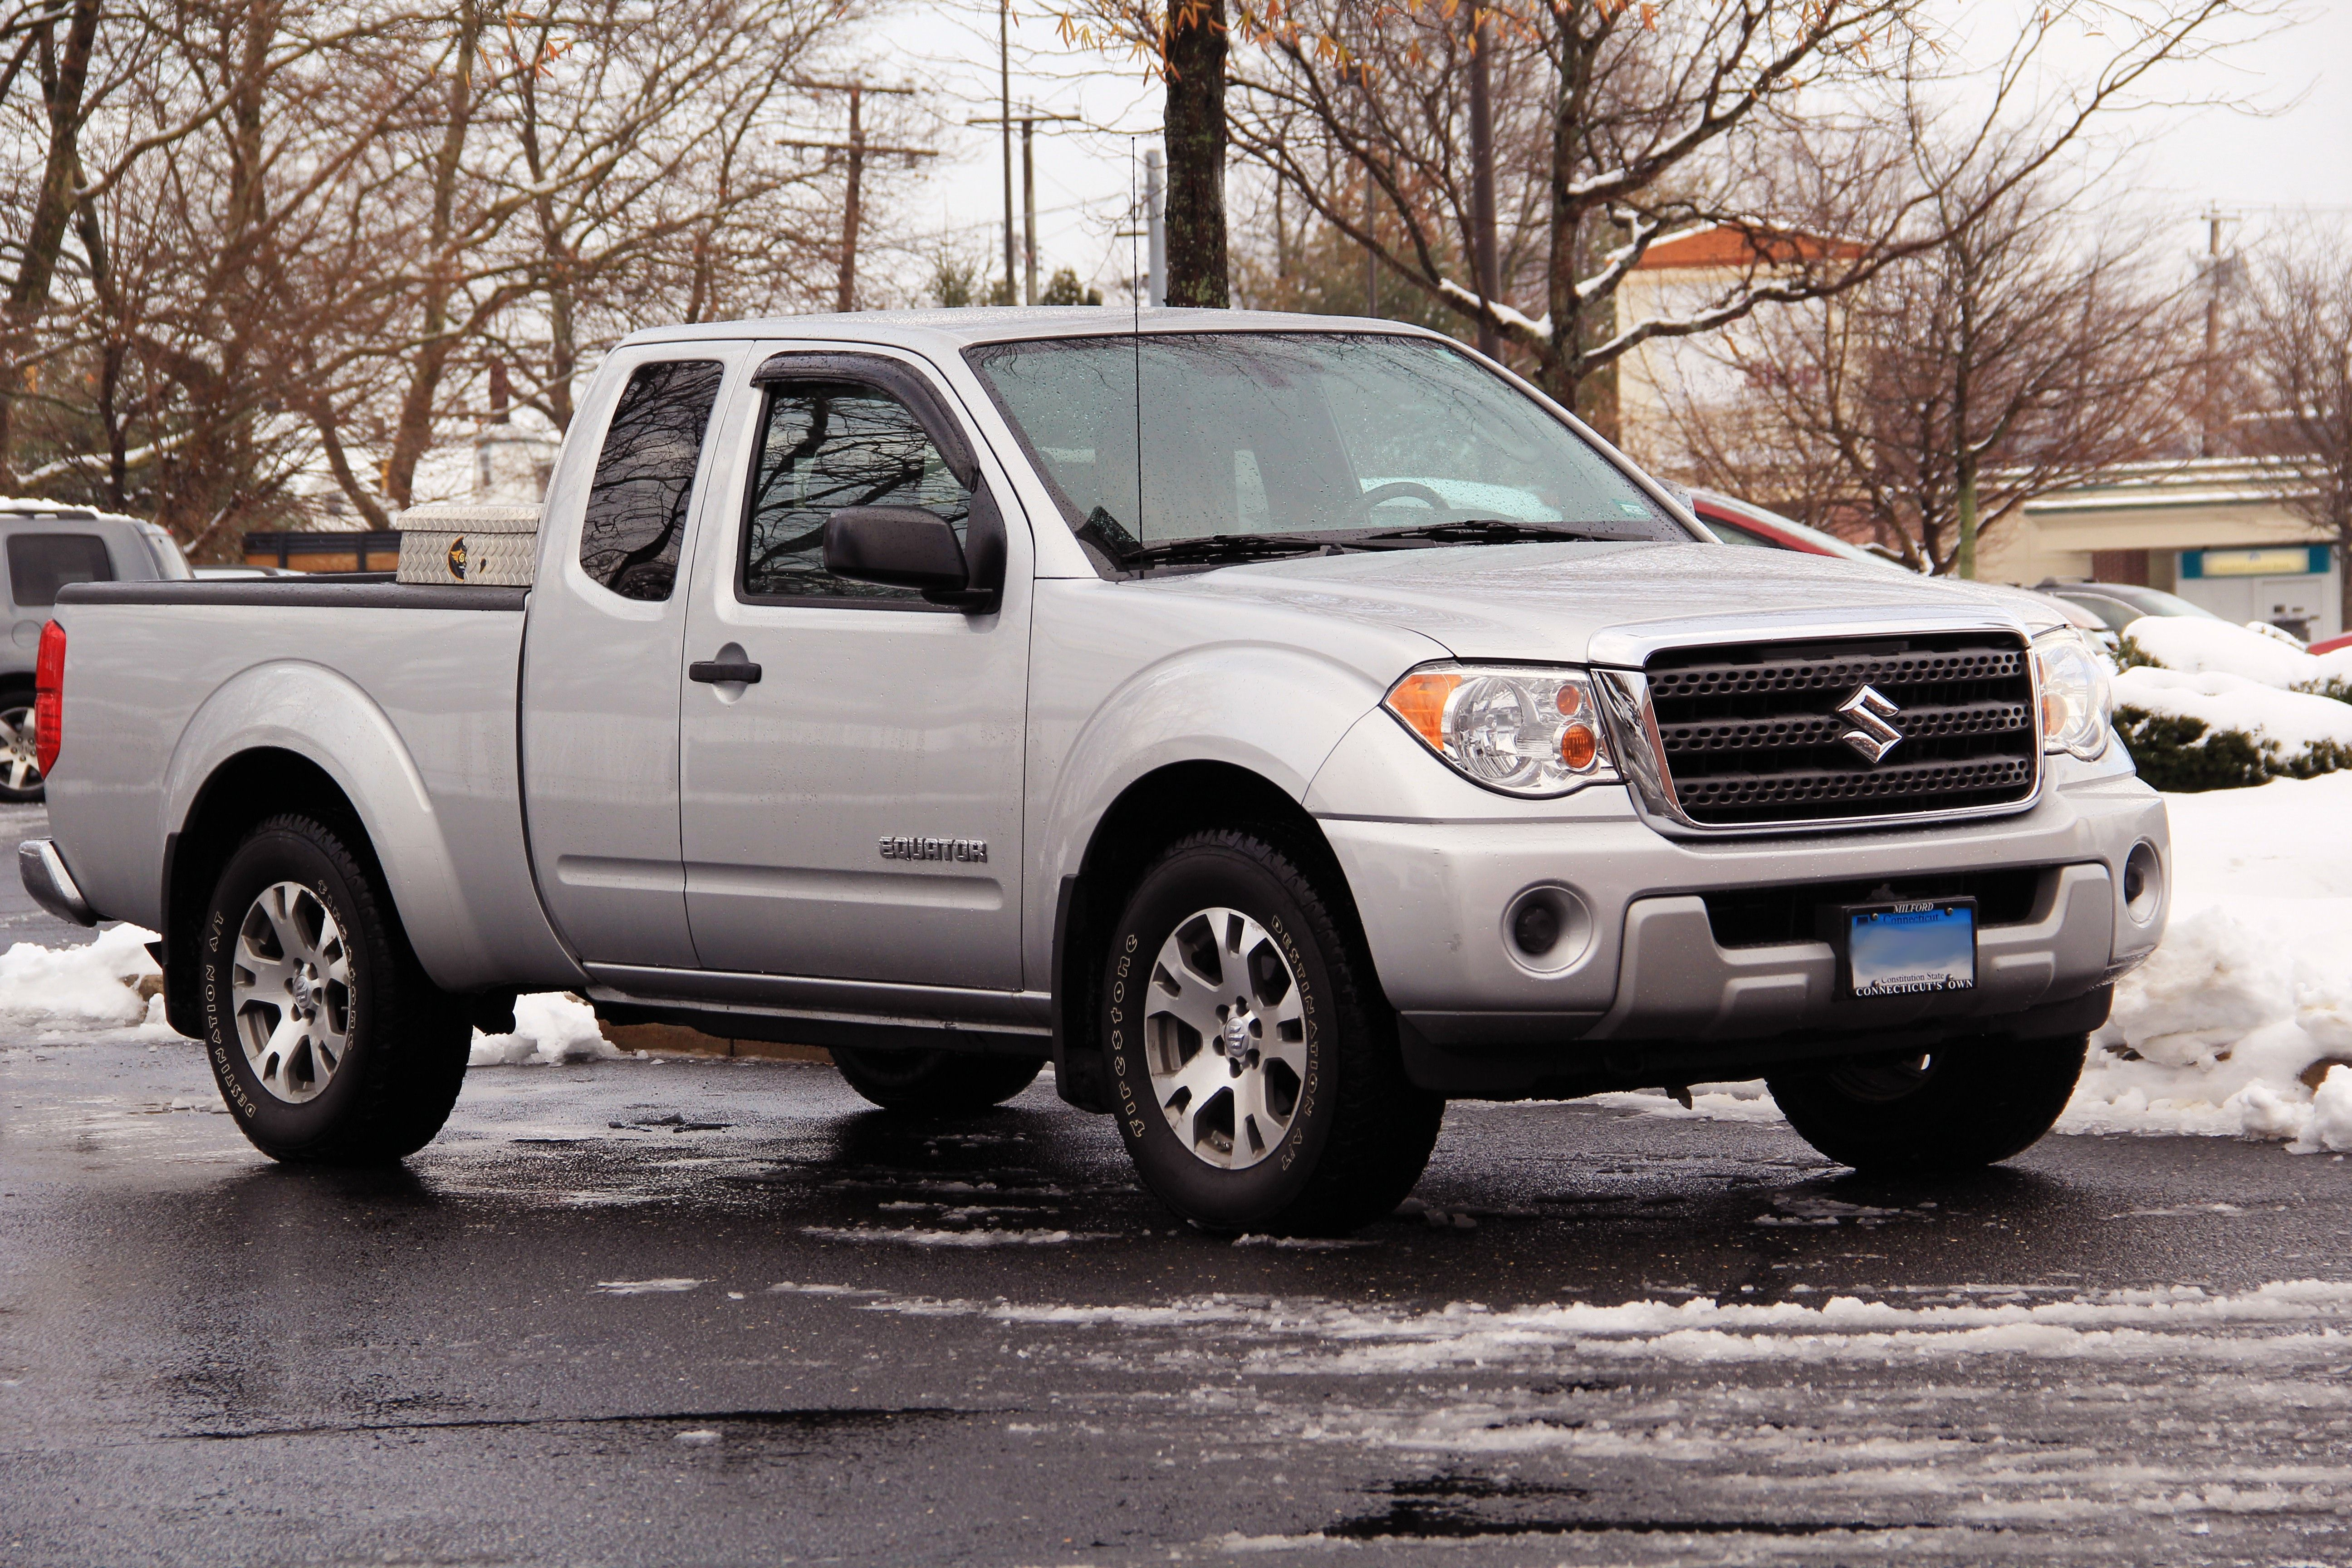 dr trucks extended overview xe cargurus cars sb nissan cab frontier pic